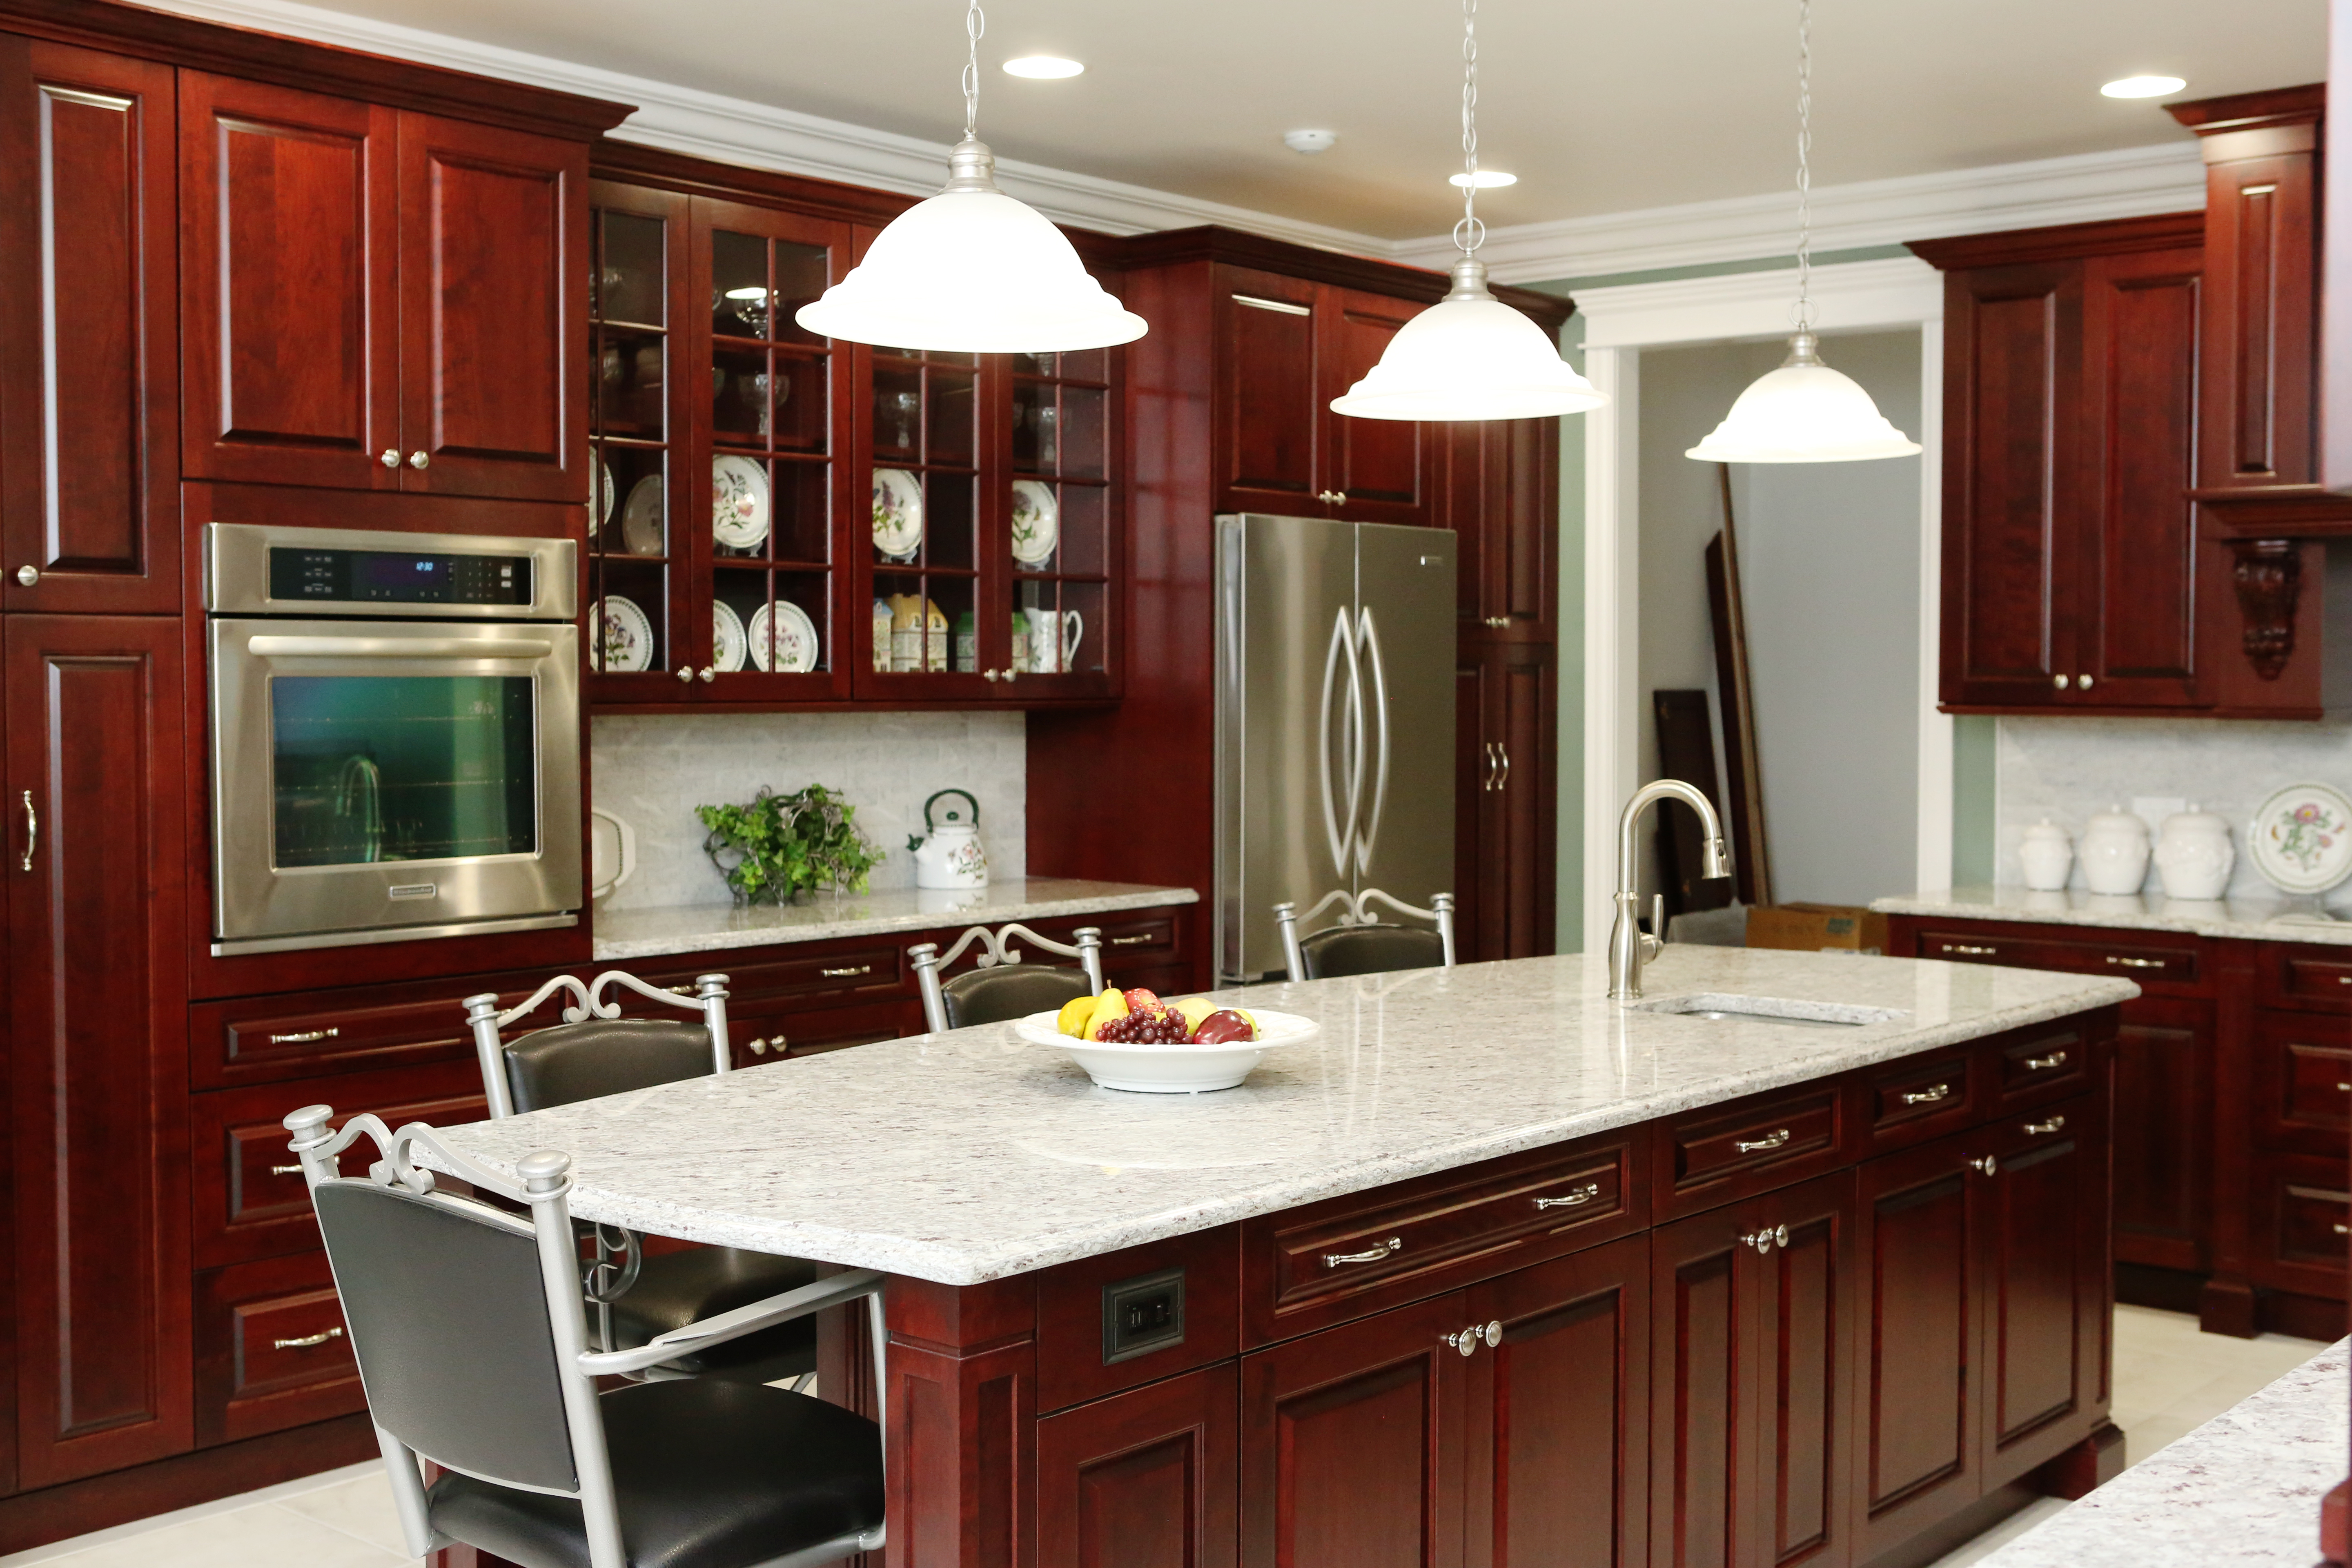 House Remodeling Contractors Near Me Contractor Renovation Contractor Renovation With Contractor